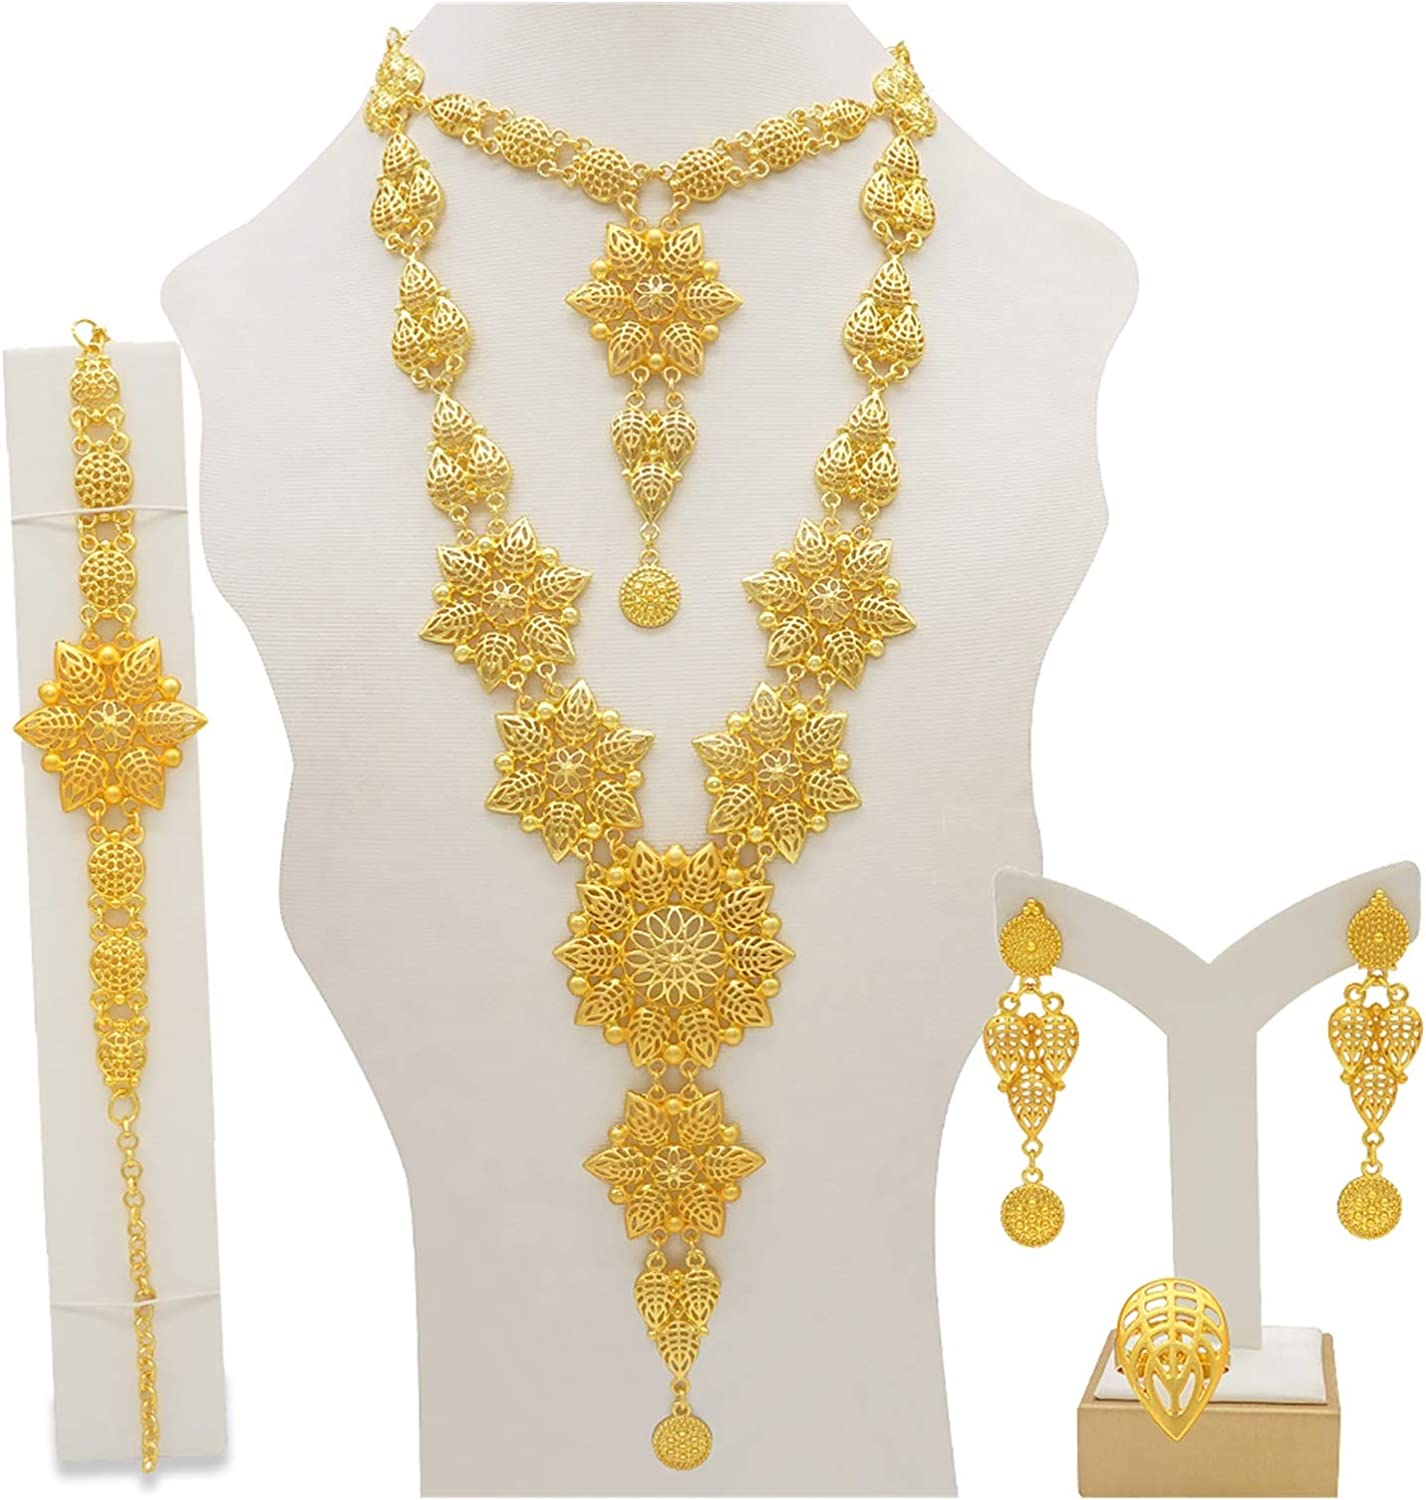 ZCPCS Dubai Jewelry Sets Gold Necklace & Earring Set for Women African France Wedding Party 24K Jewelery Ethiopia Bridal Gifts (Metal Color : BJ832 2)